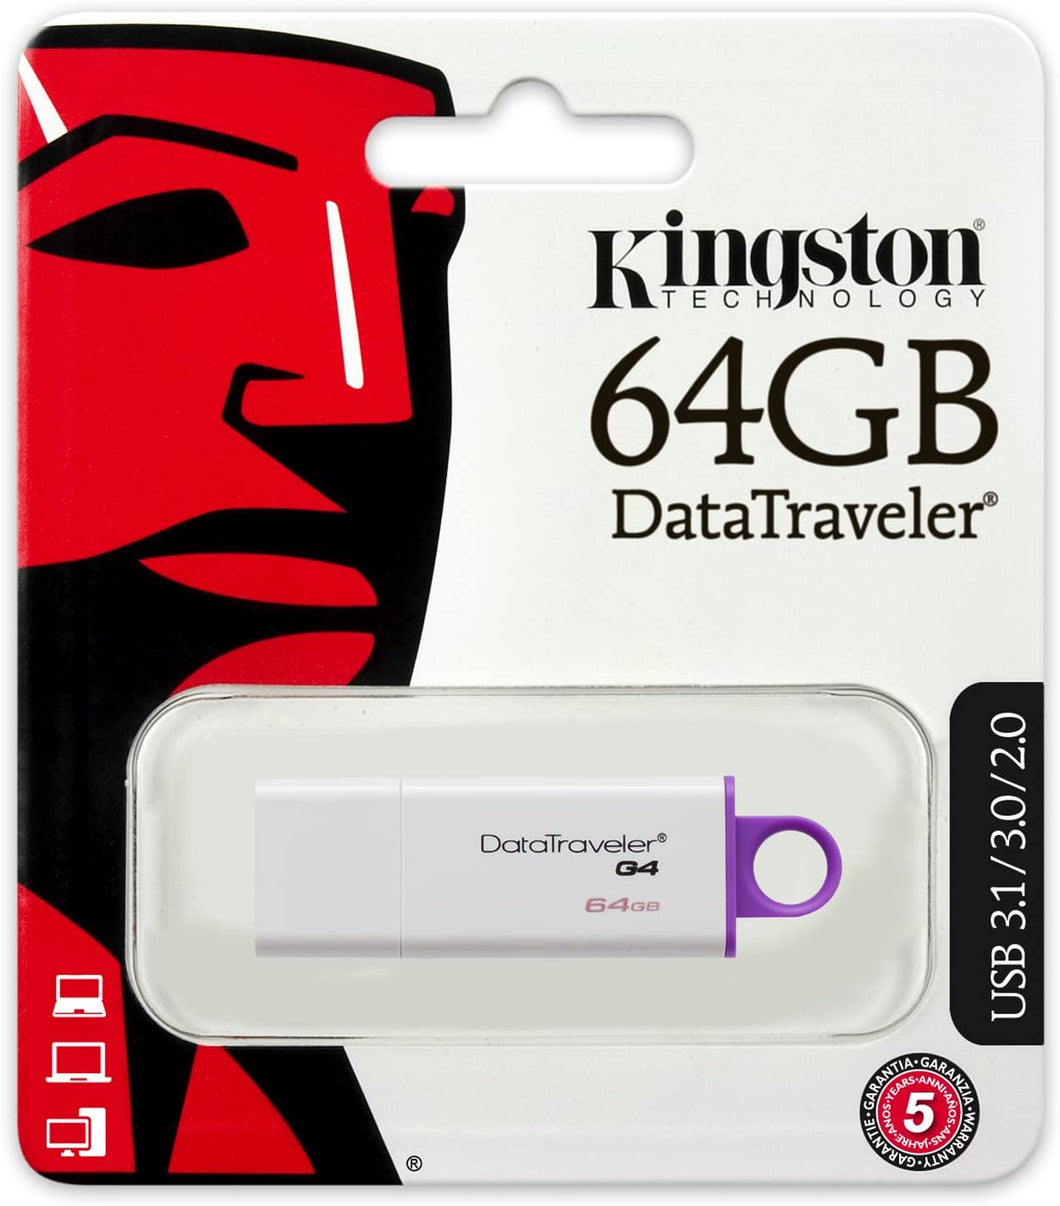 Kingston Pen Drive 64GB DTI-G4 3.0 DTIG4/64GB